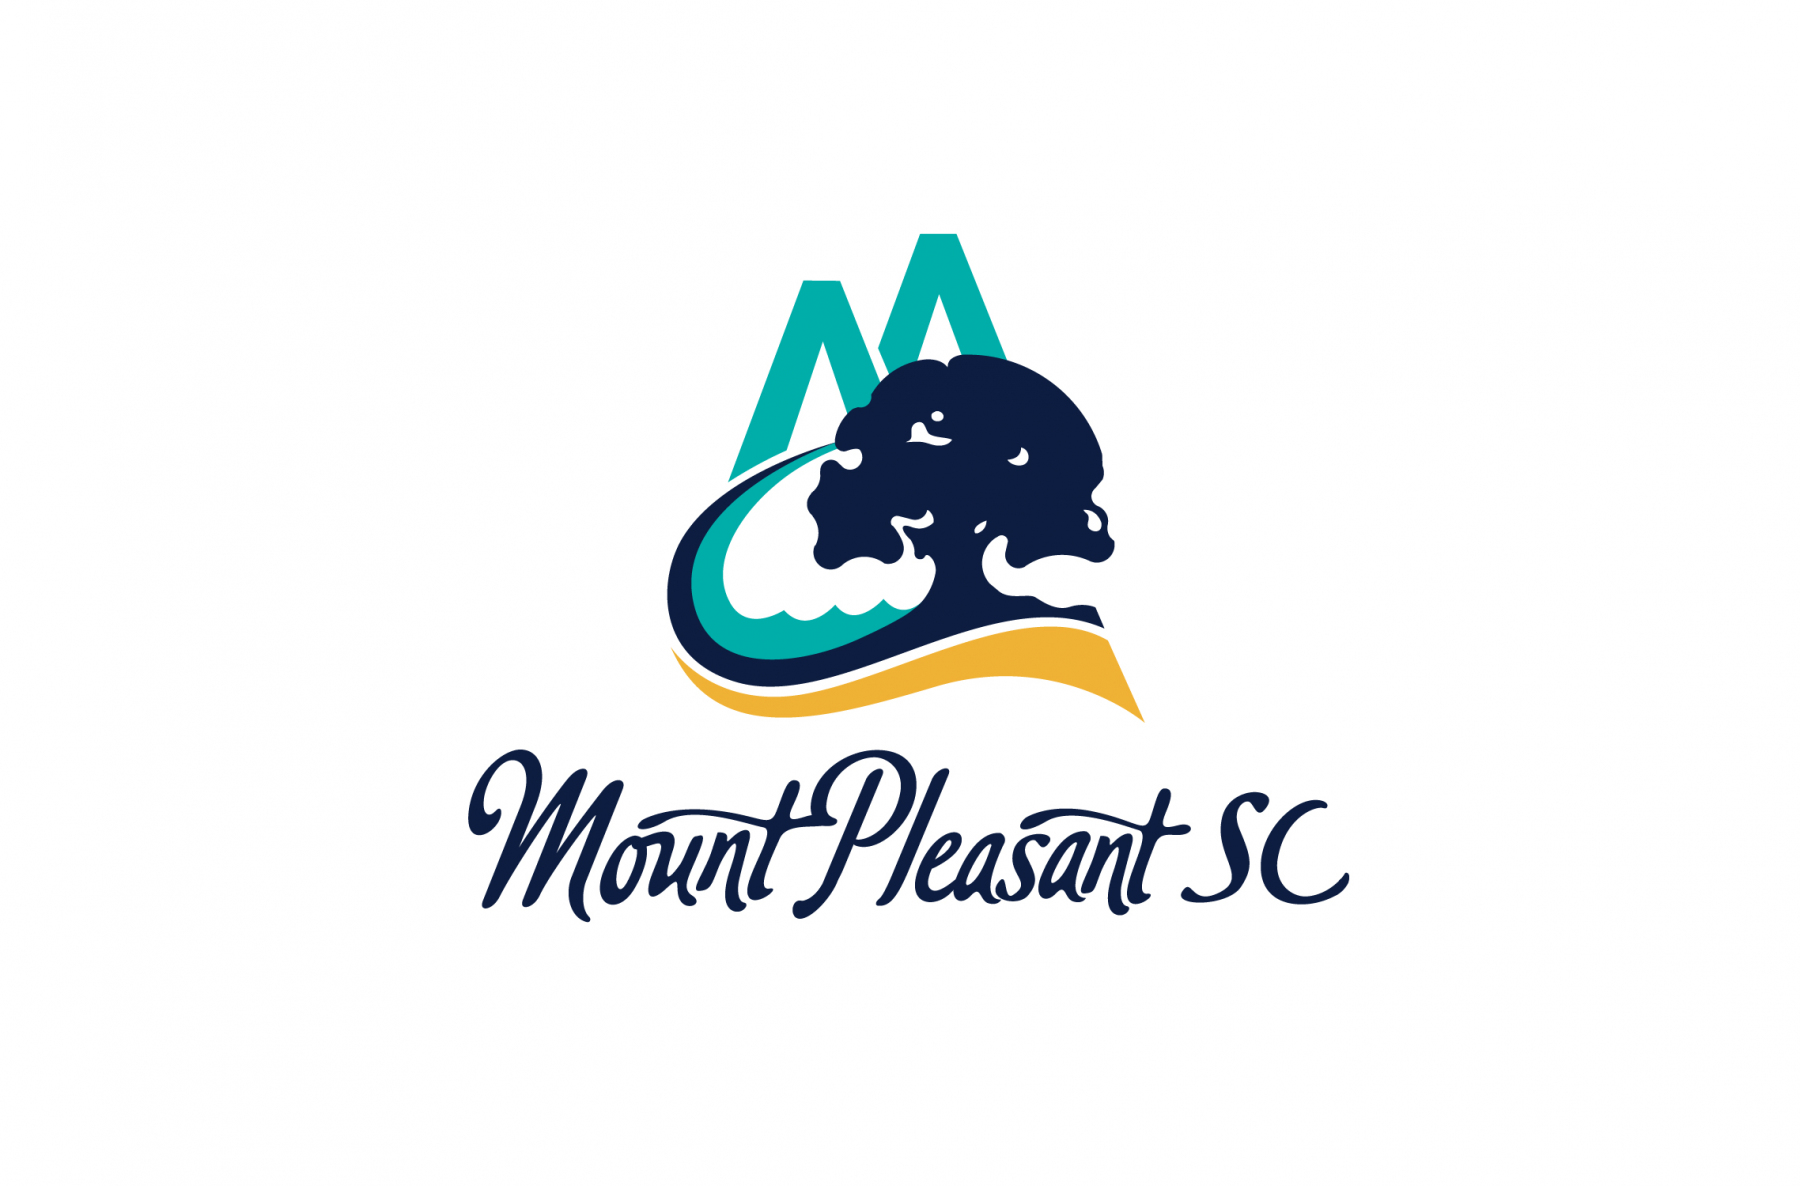 Town Of Mount Pleasant, SC